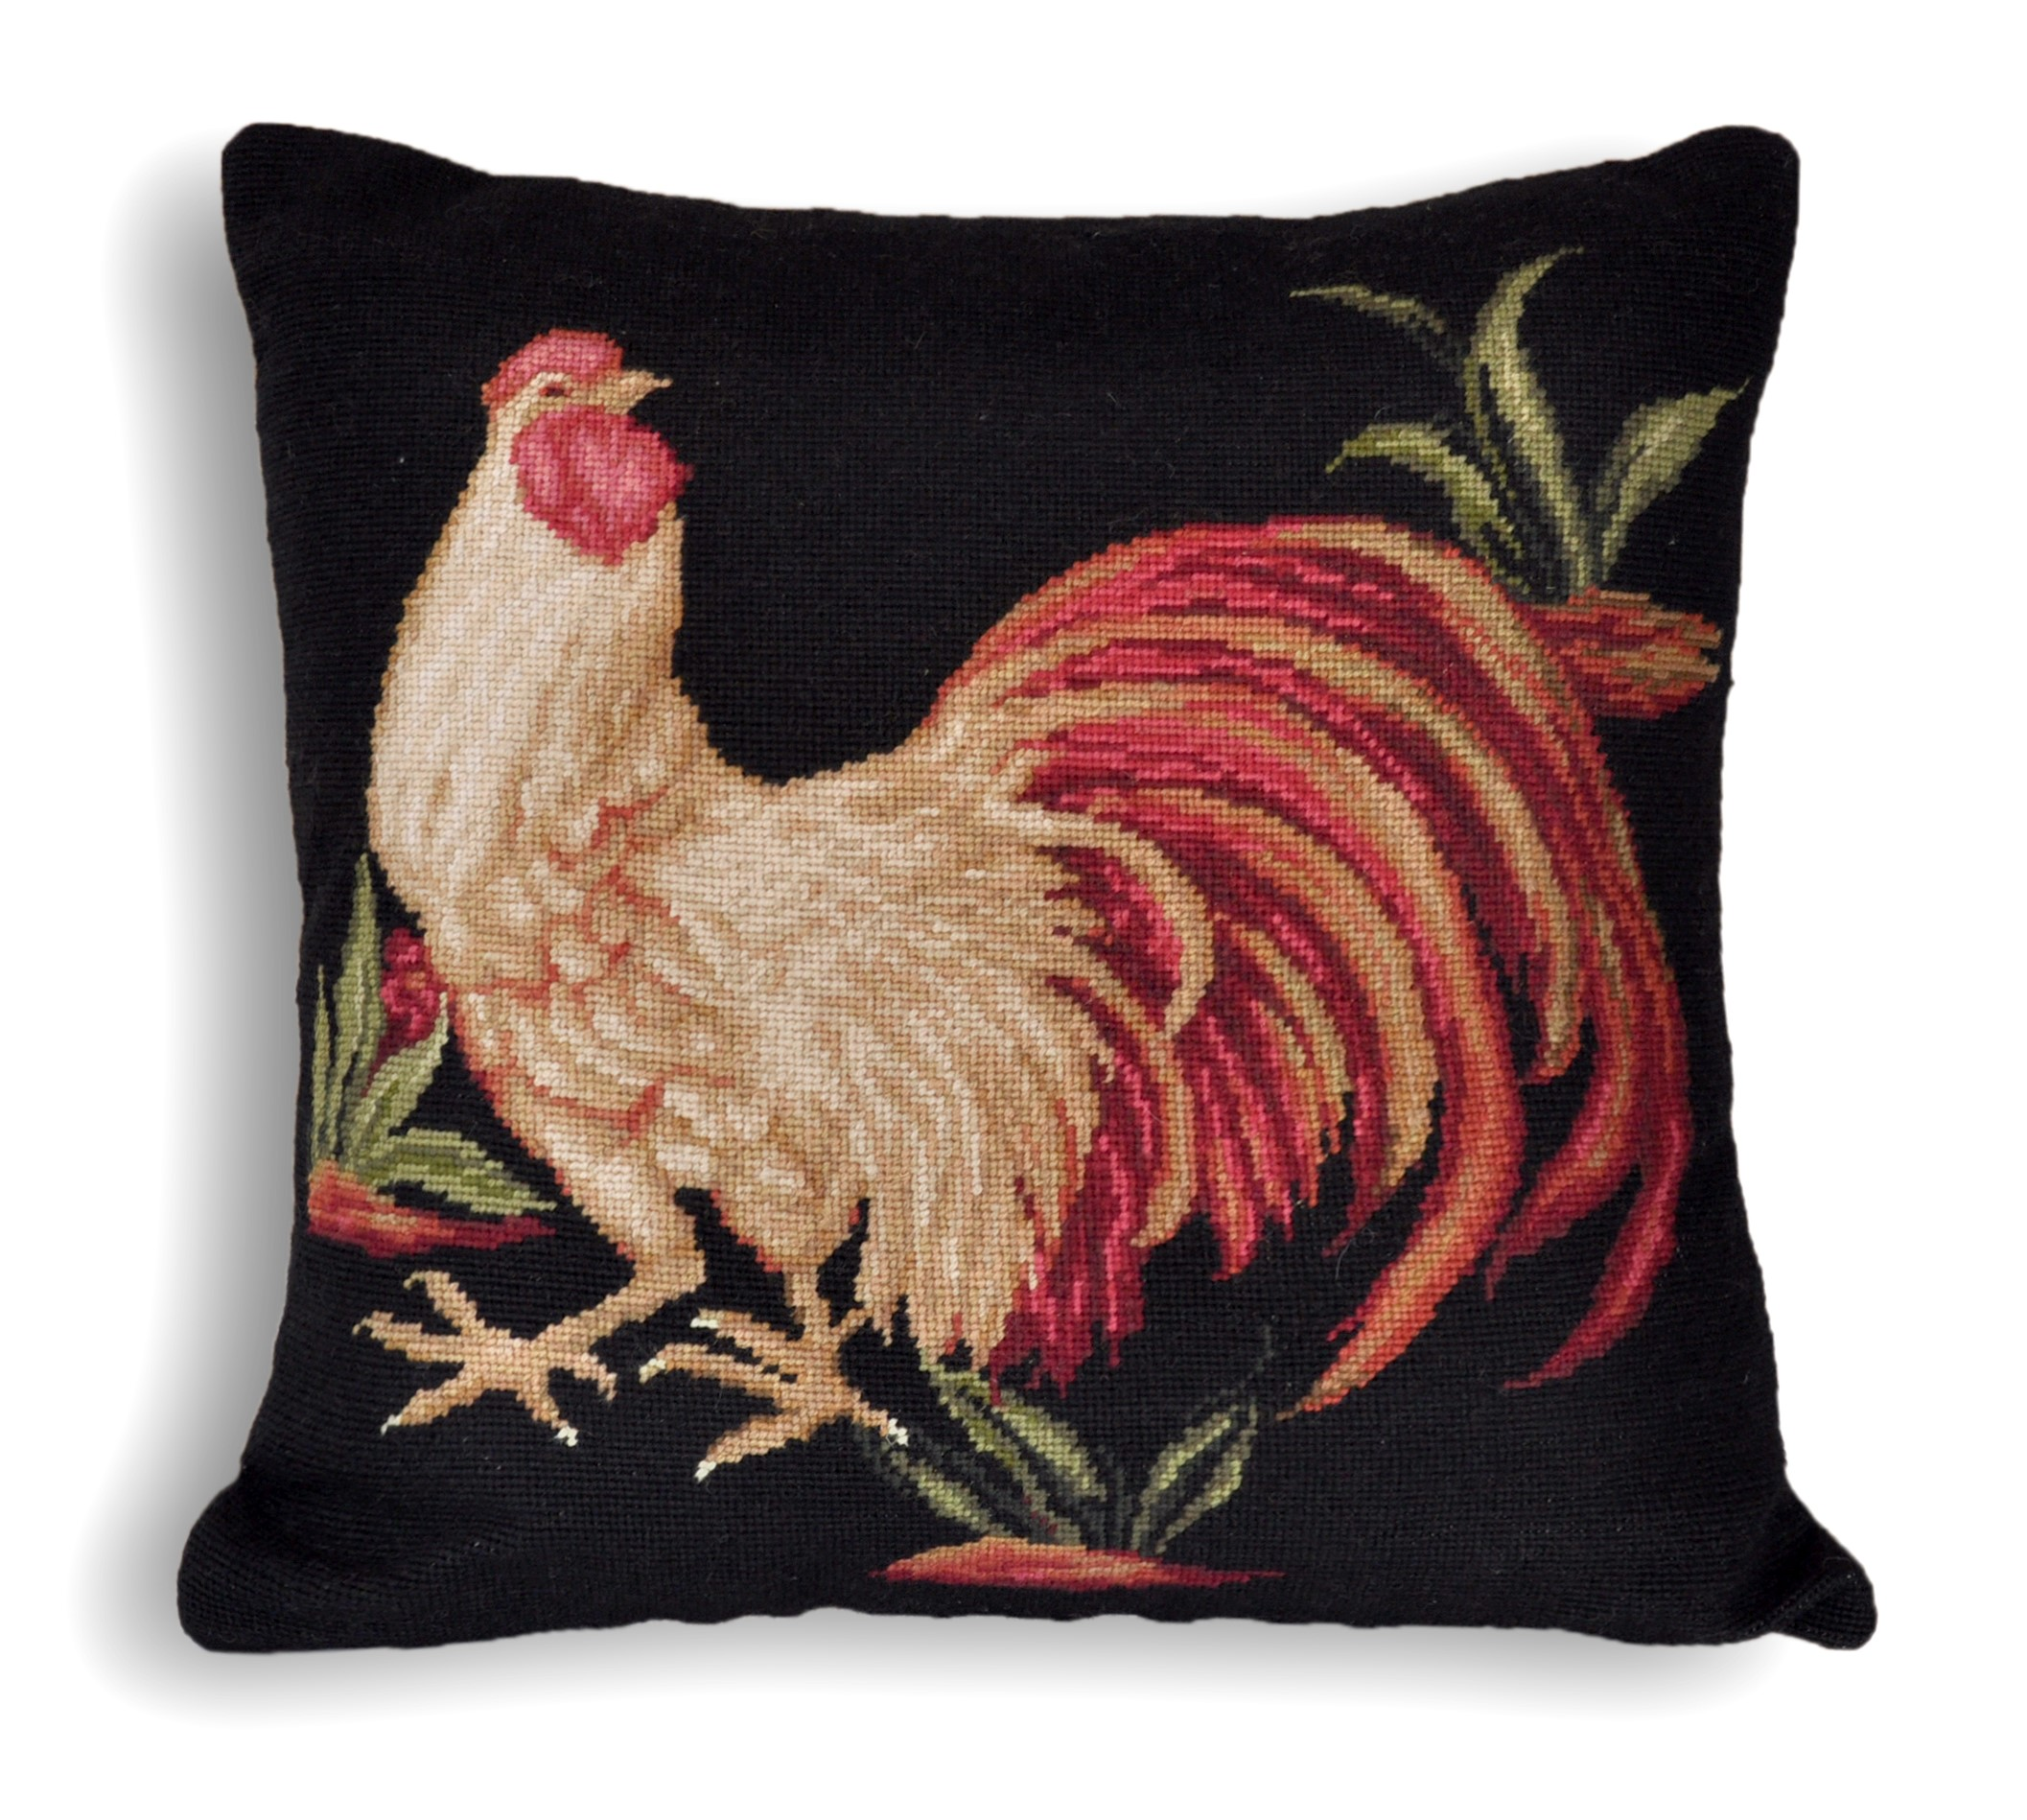 20″x20″ Rooster Needlepoint Pillow Cover 12980132